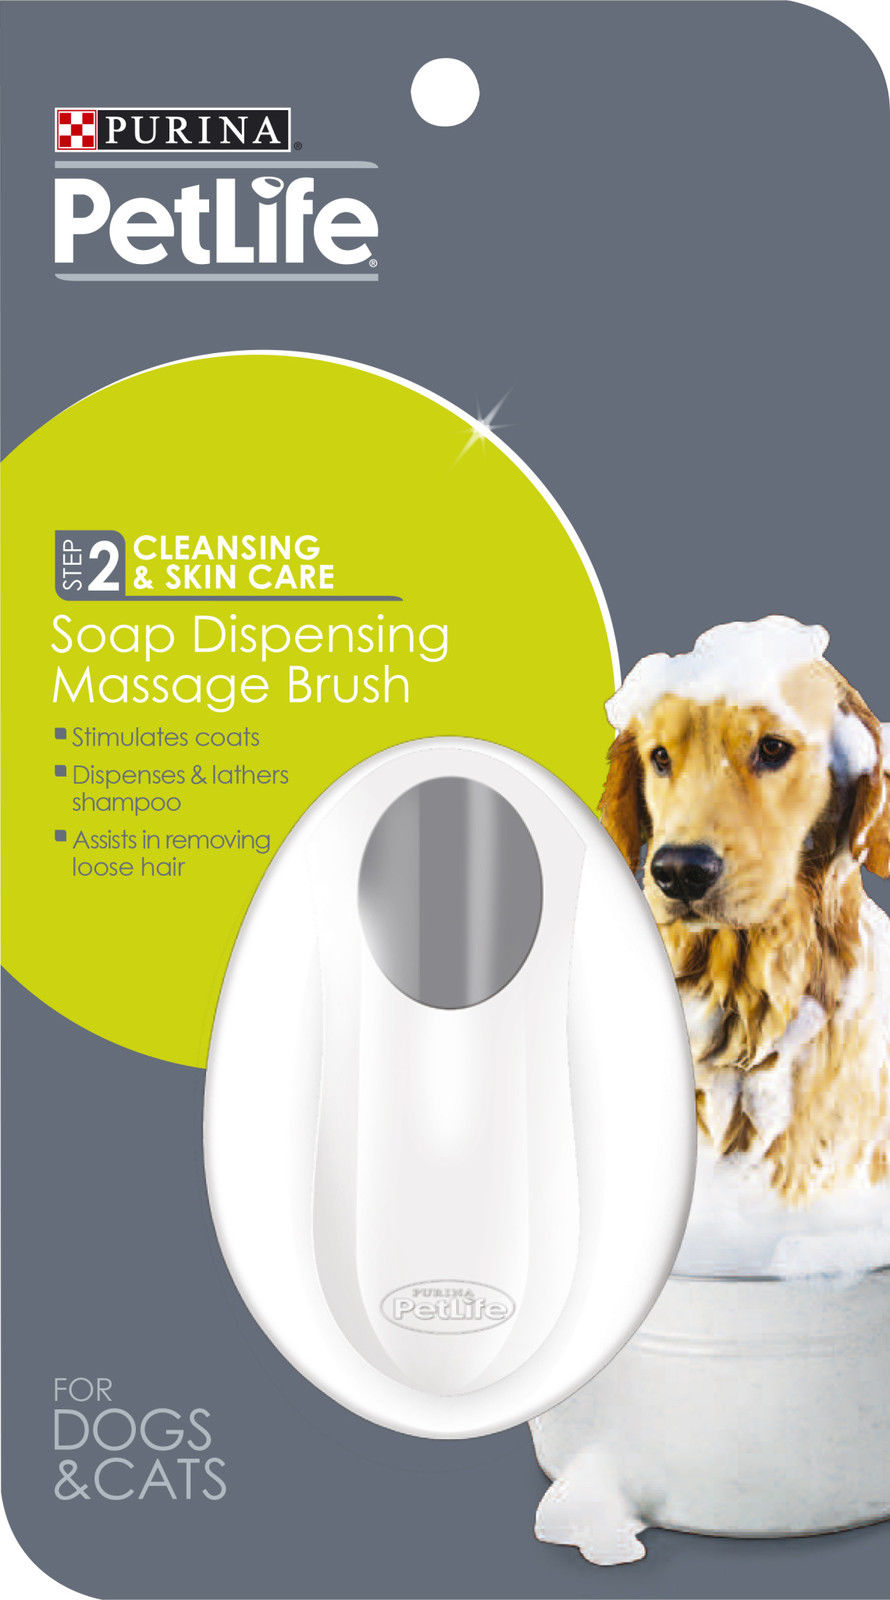 Purina Petlife Soap Dispensing Brush